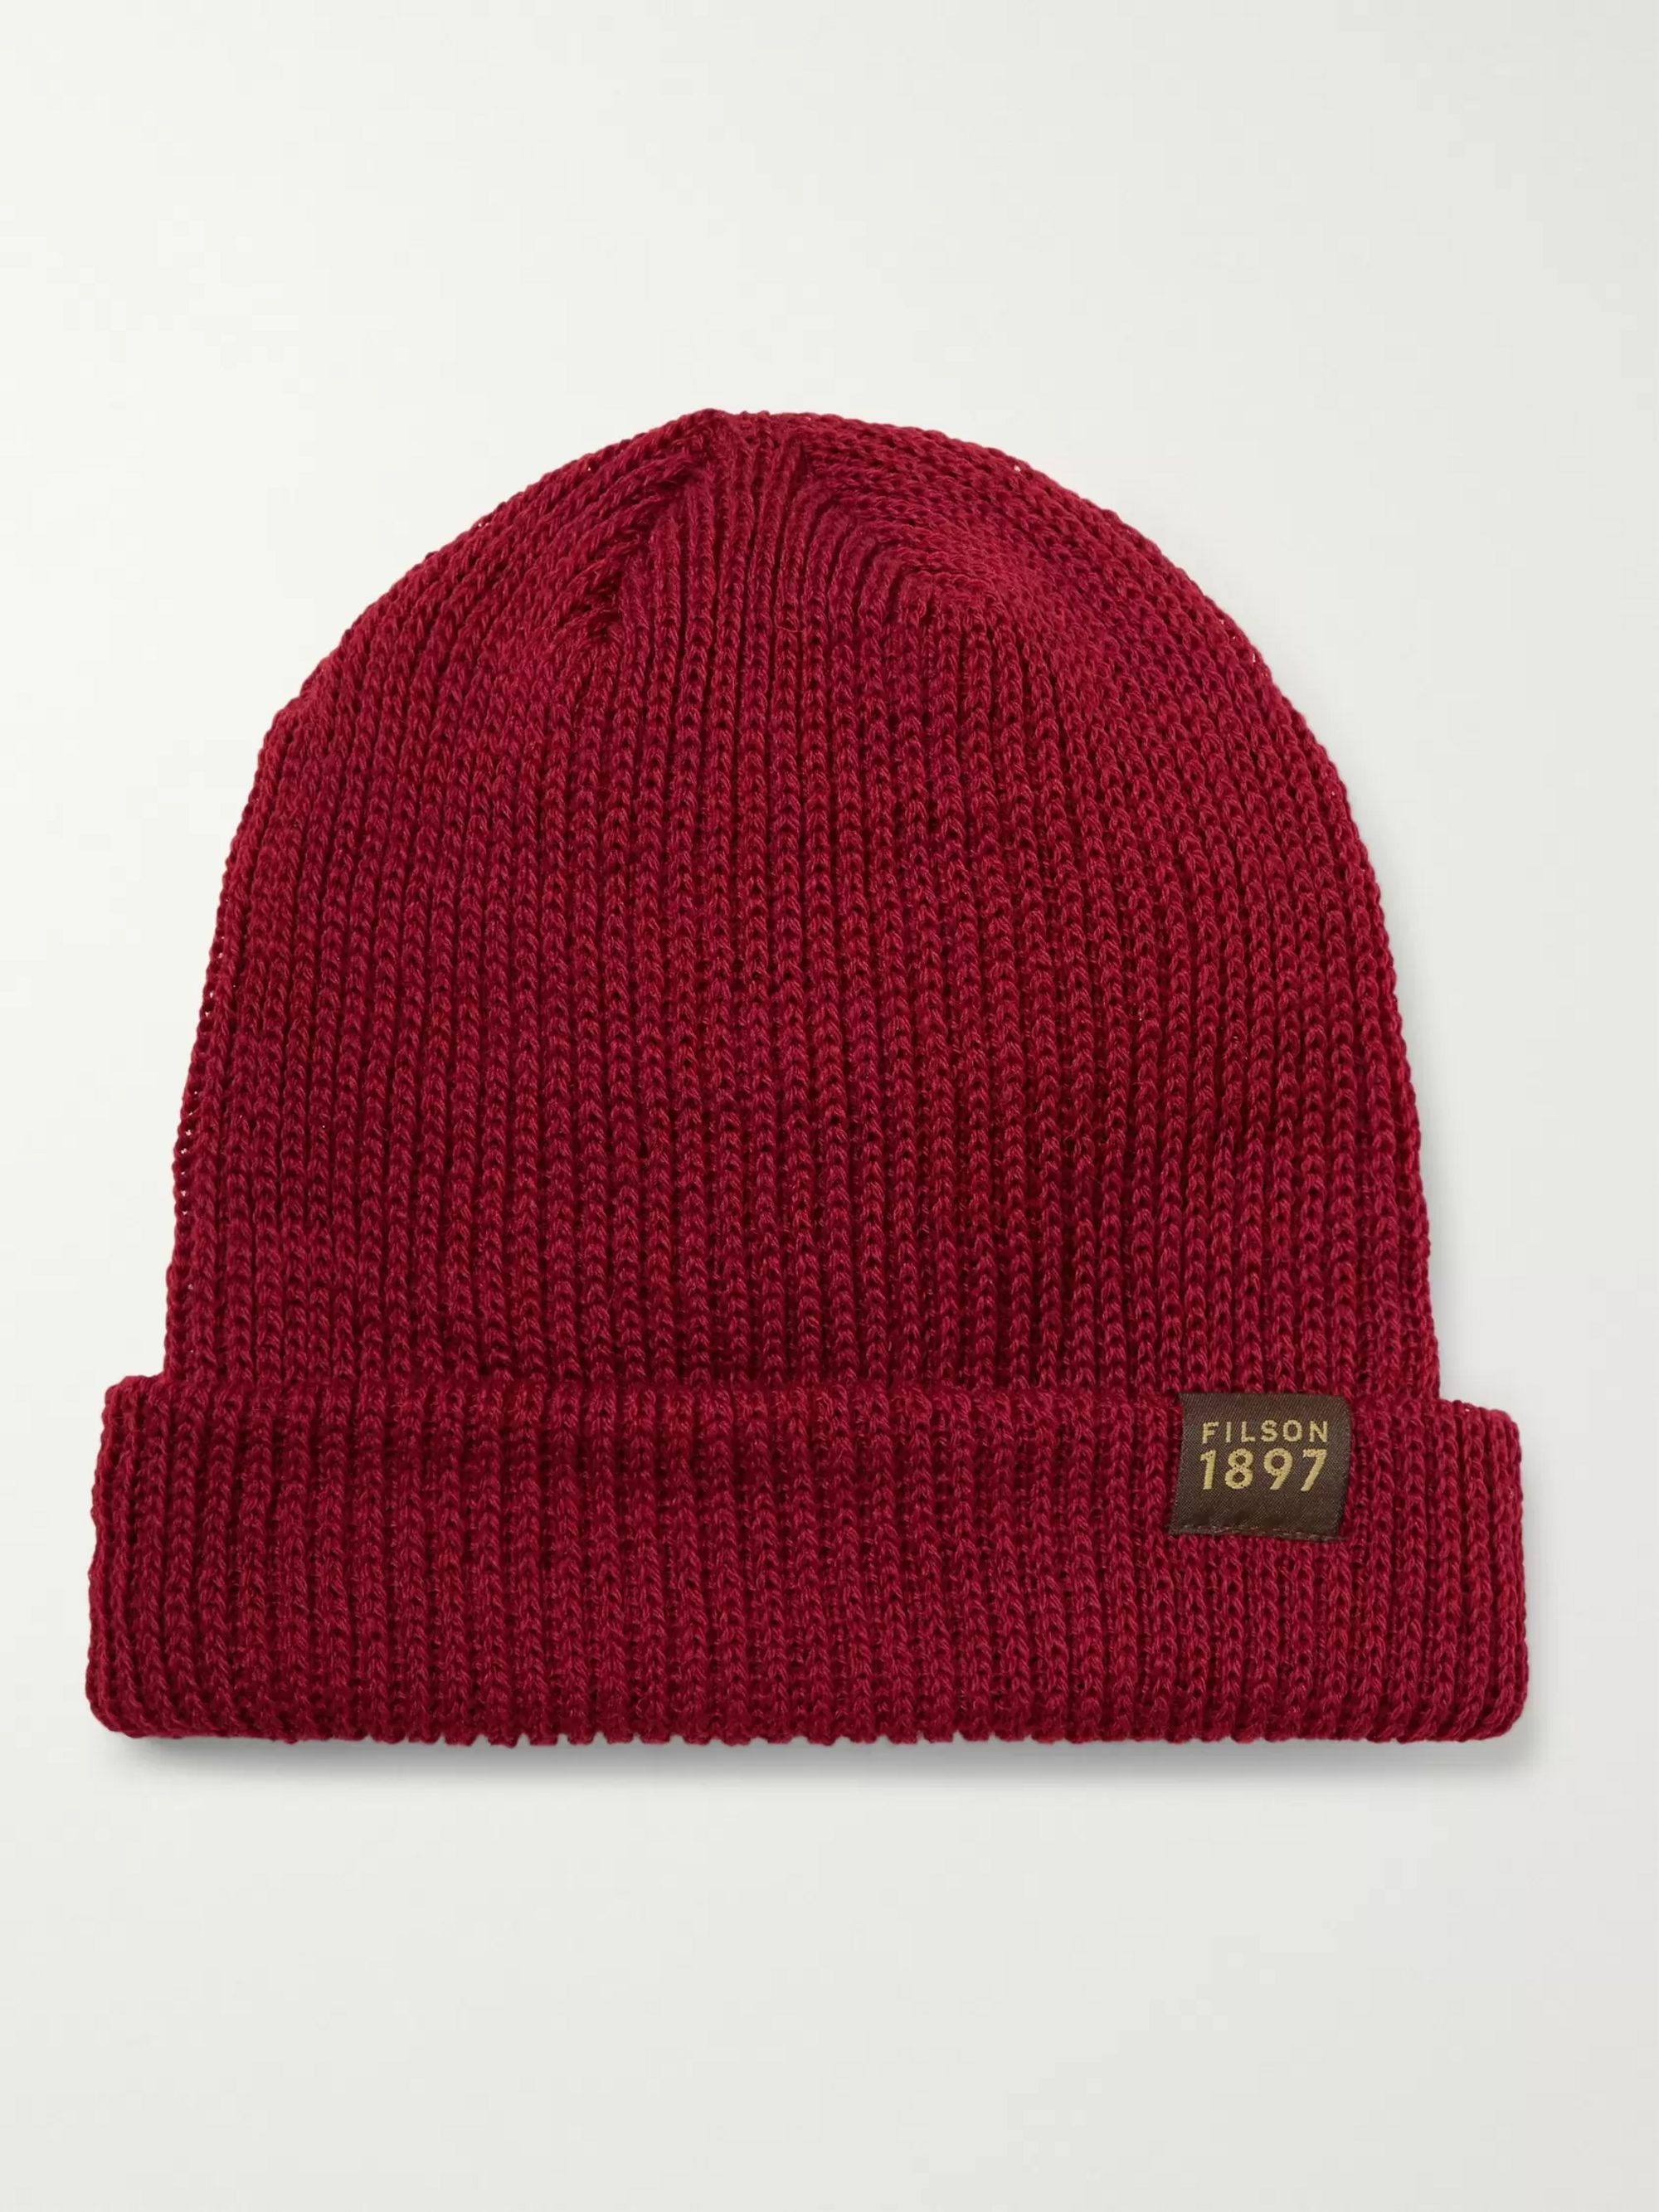 Filson Ribbed Virgin Wool Beanie